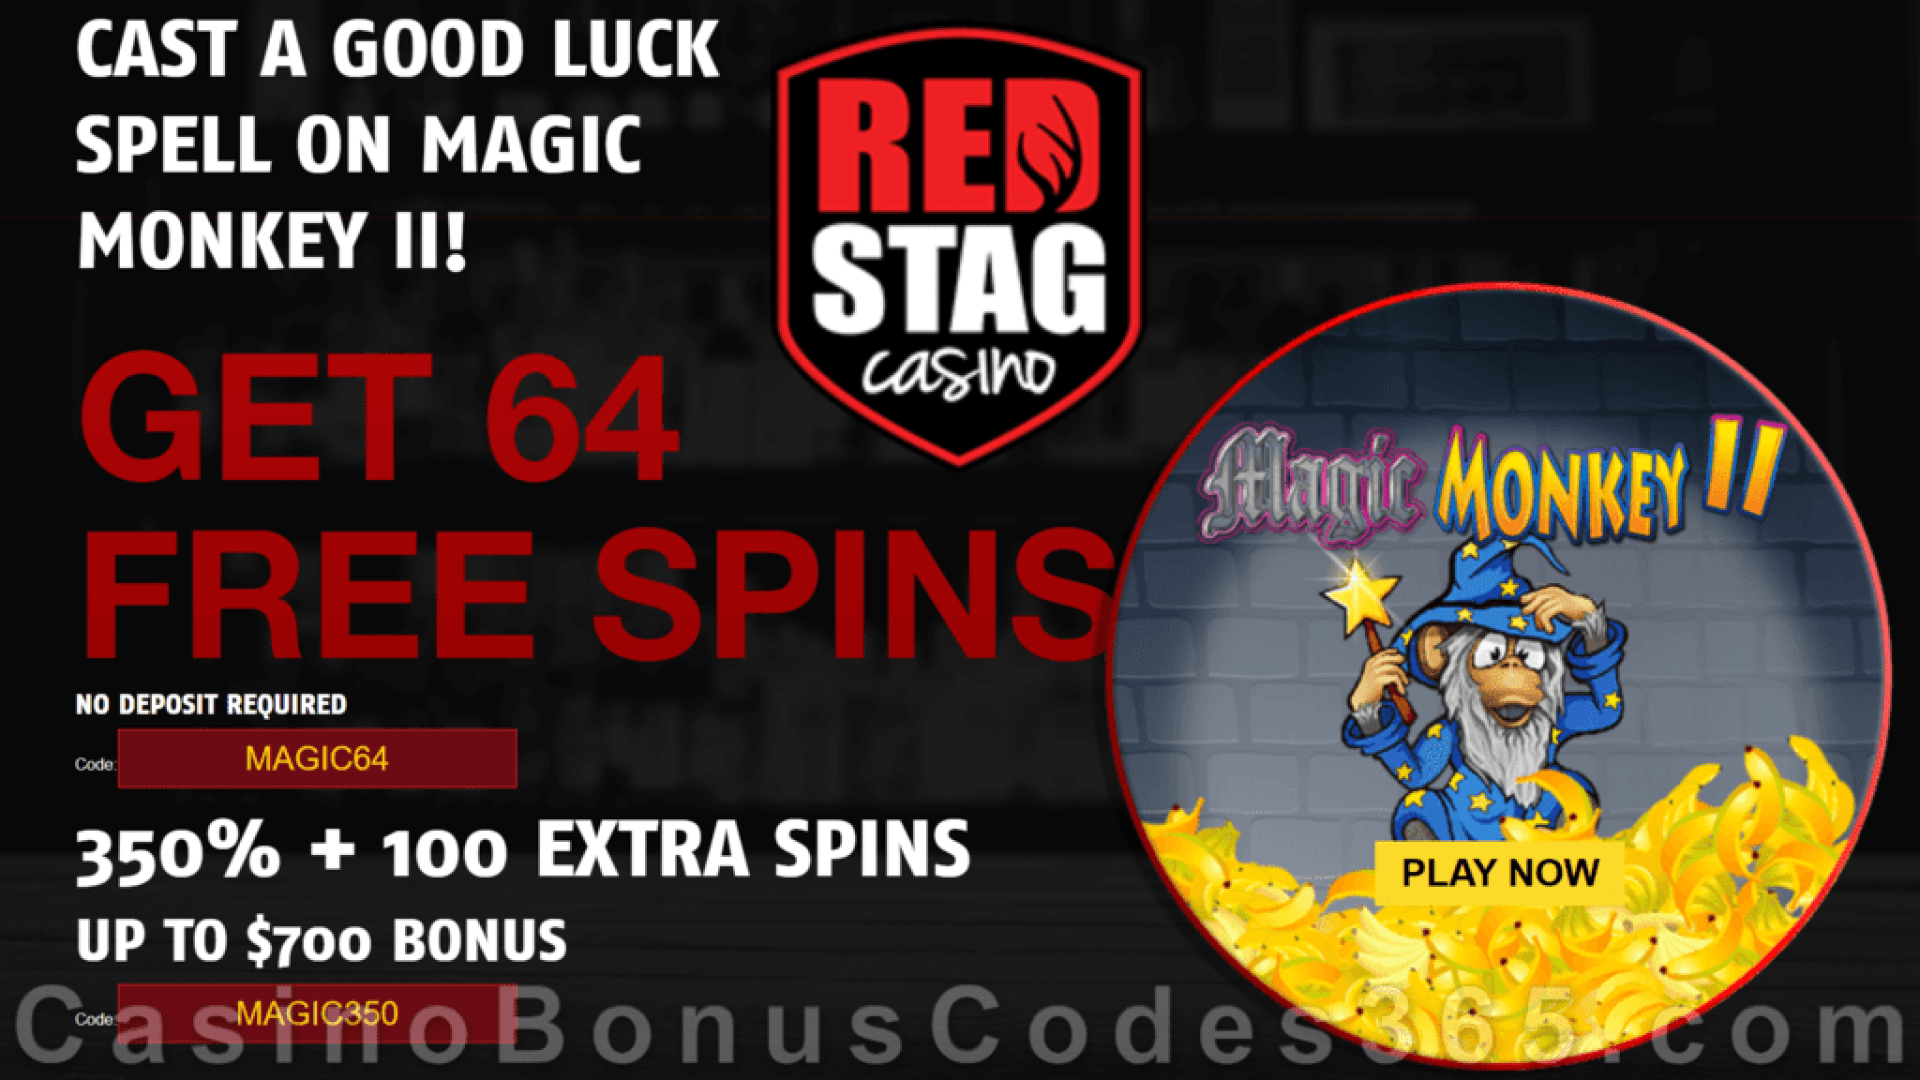 Red Stag Casino 64 FREE Spins on WGS Magic Monkey II and 350% Match up to $700 Bonus plus 100 FREE Spins Special Sign Up Offer